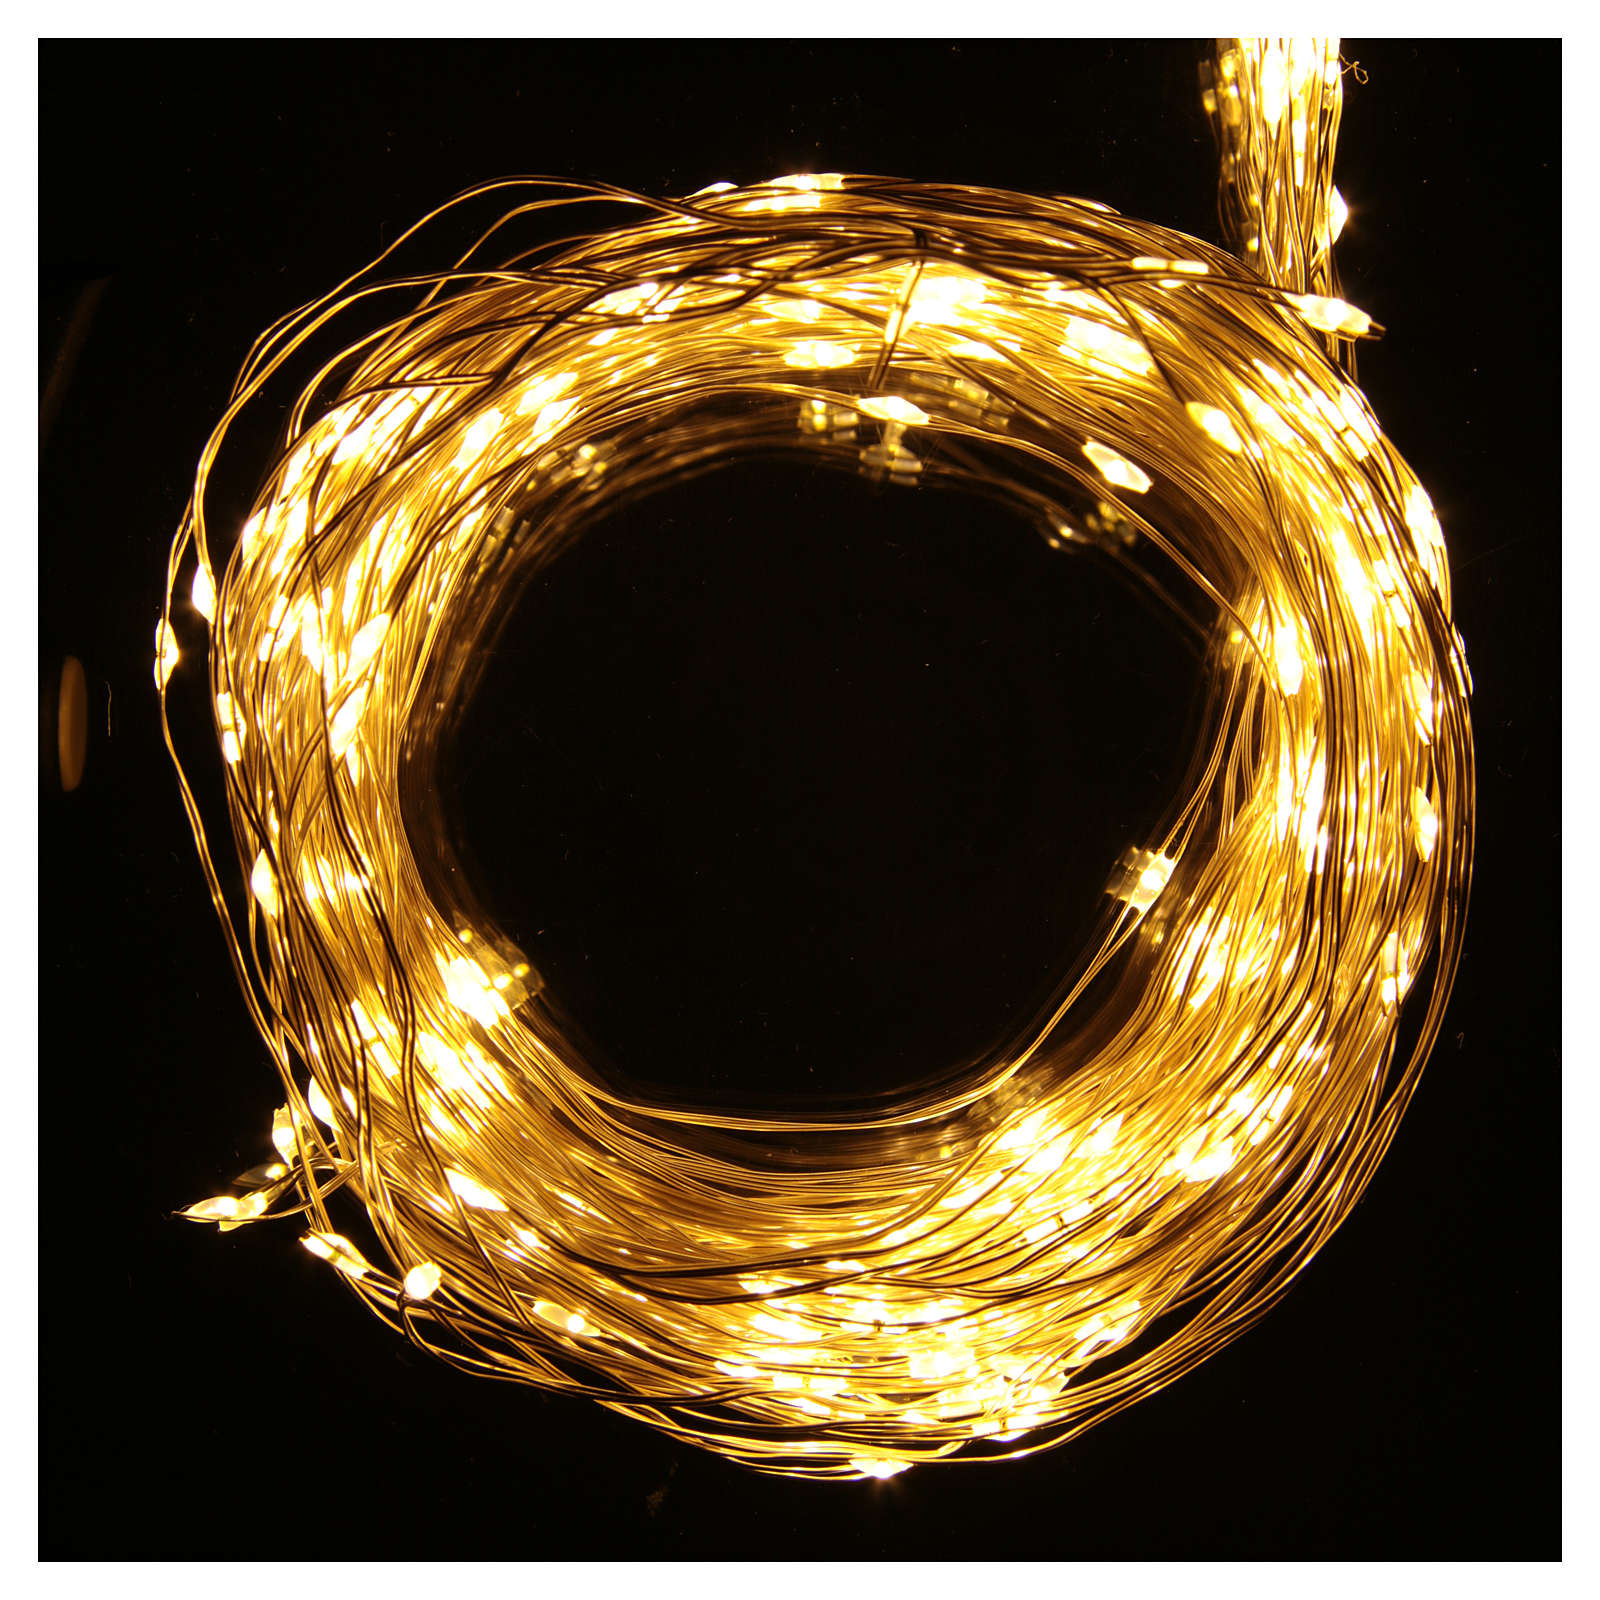 Micro Christmas Lights.Christmas Lights Branches With 360 Micro Led Warm White Indoor Use